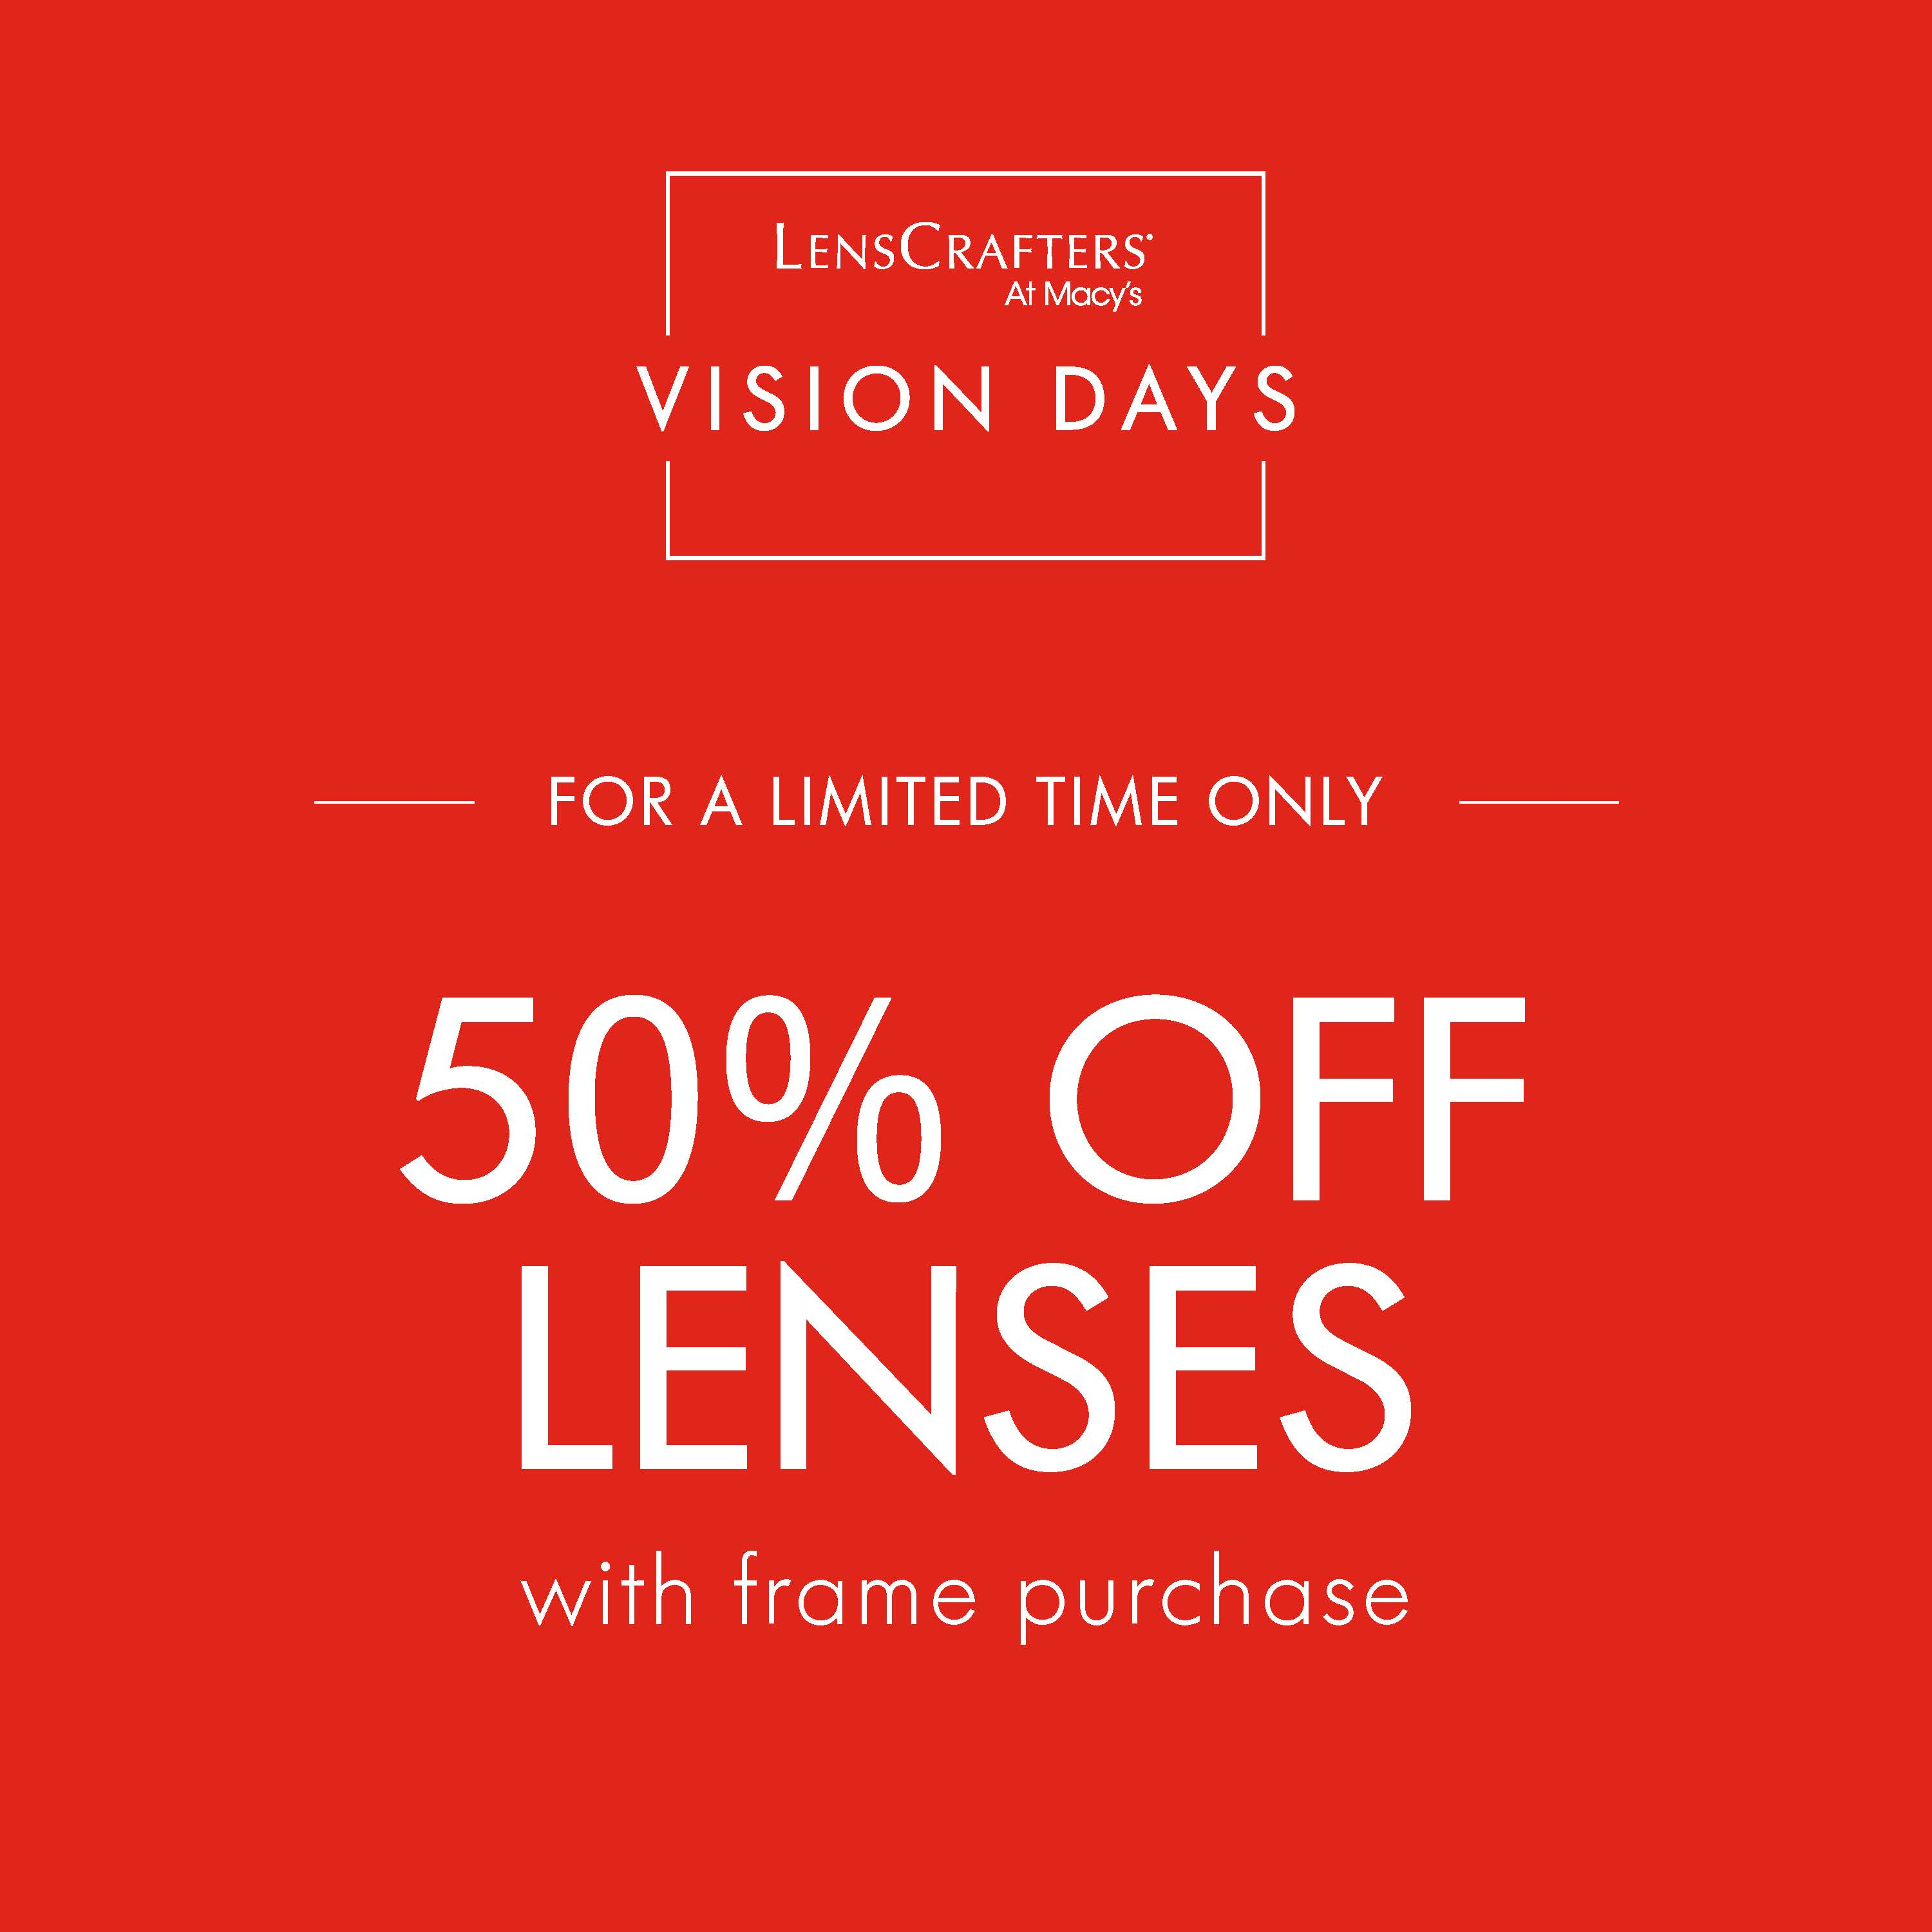 Vision Days at LensCrafters from macy's